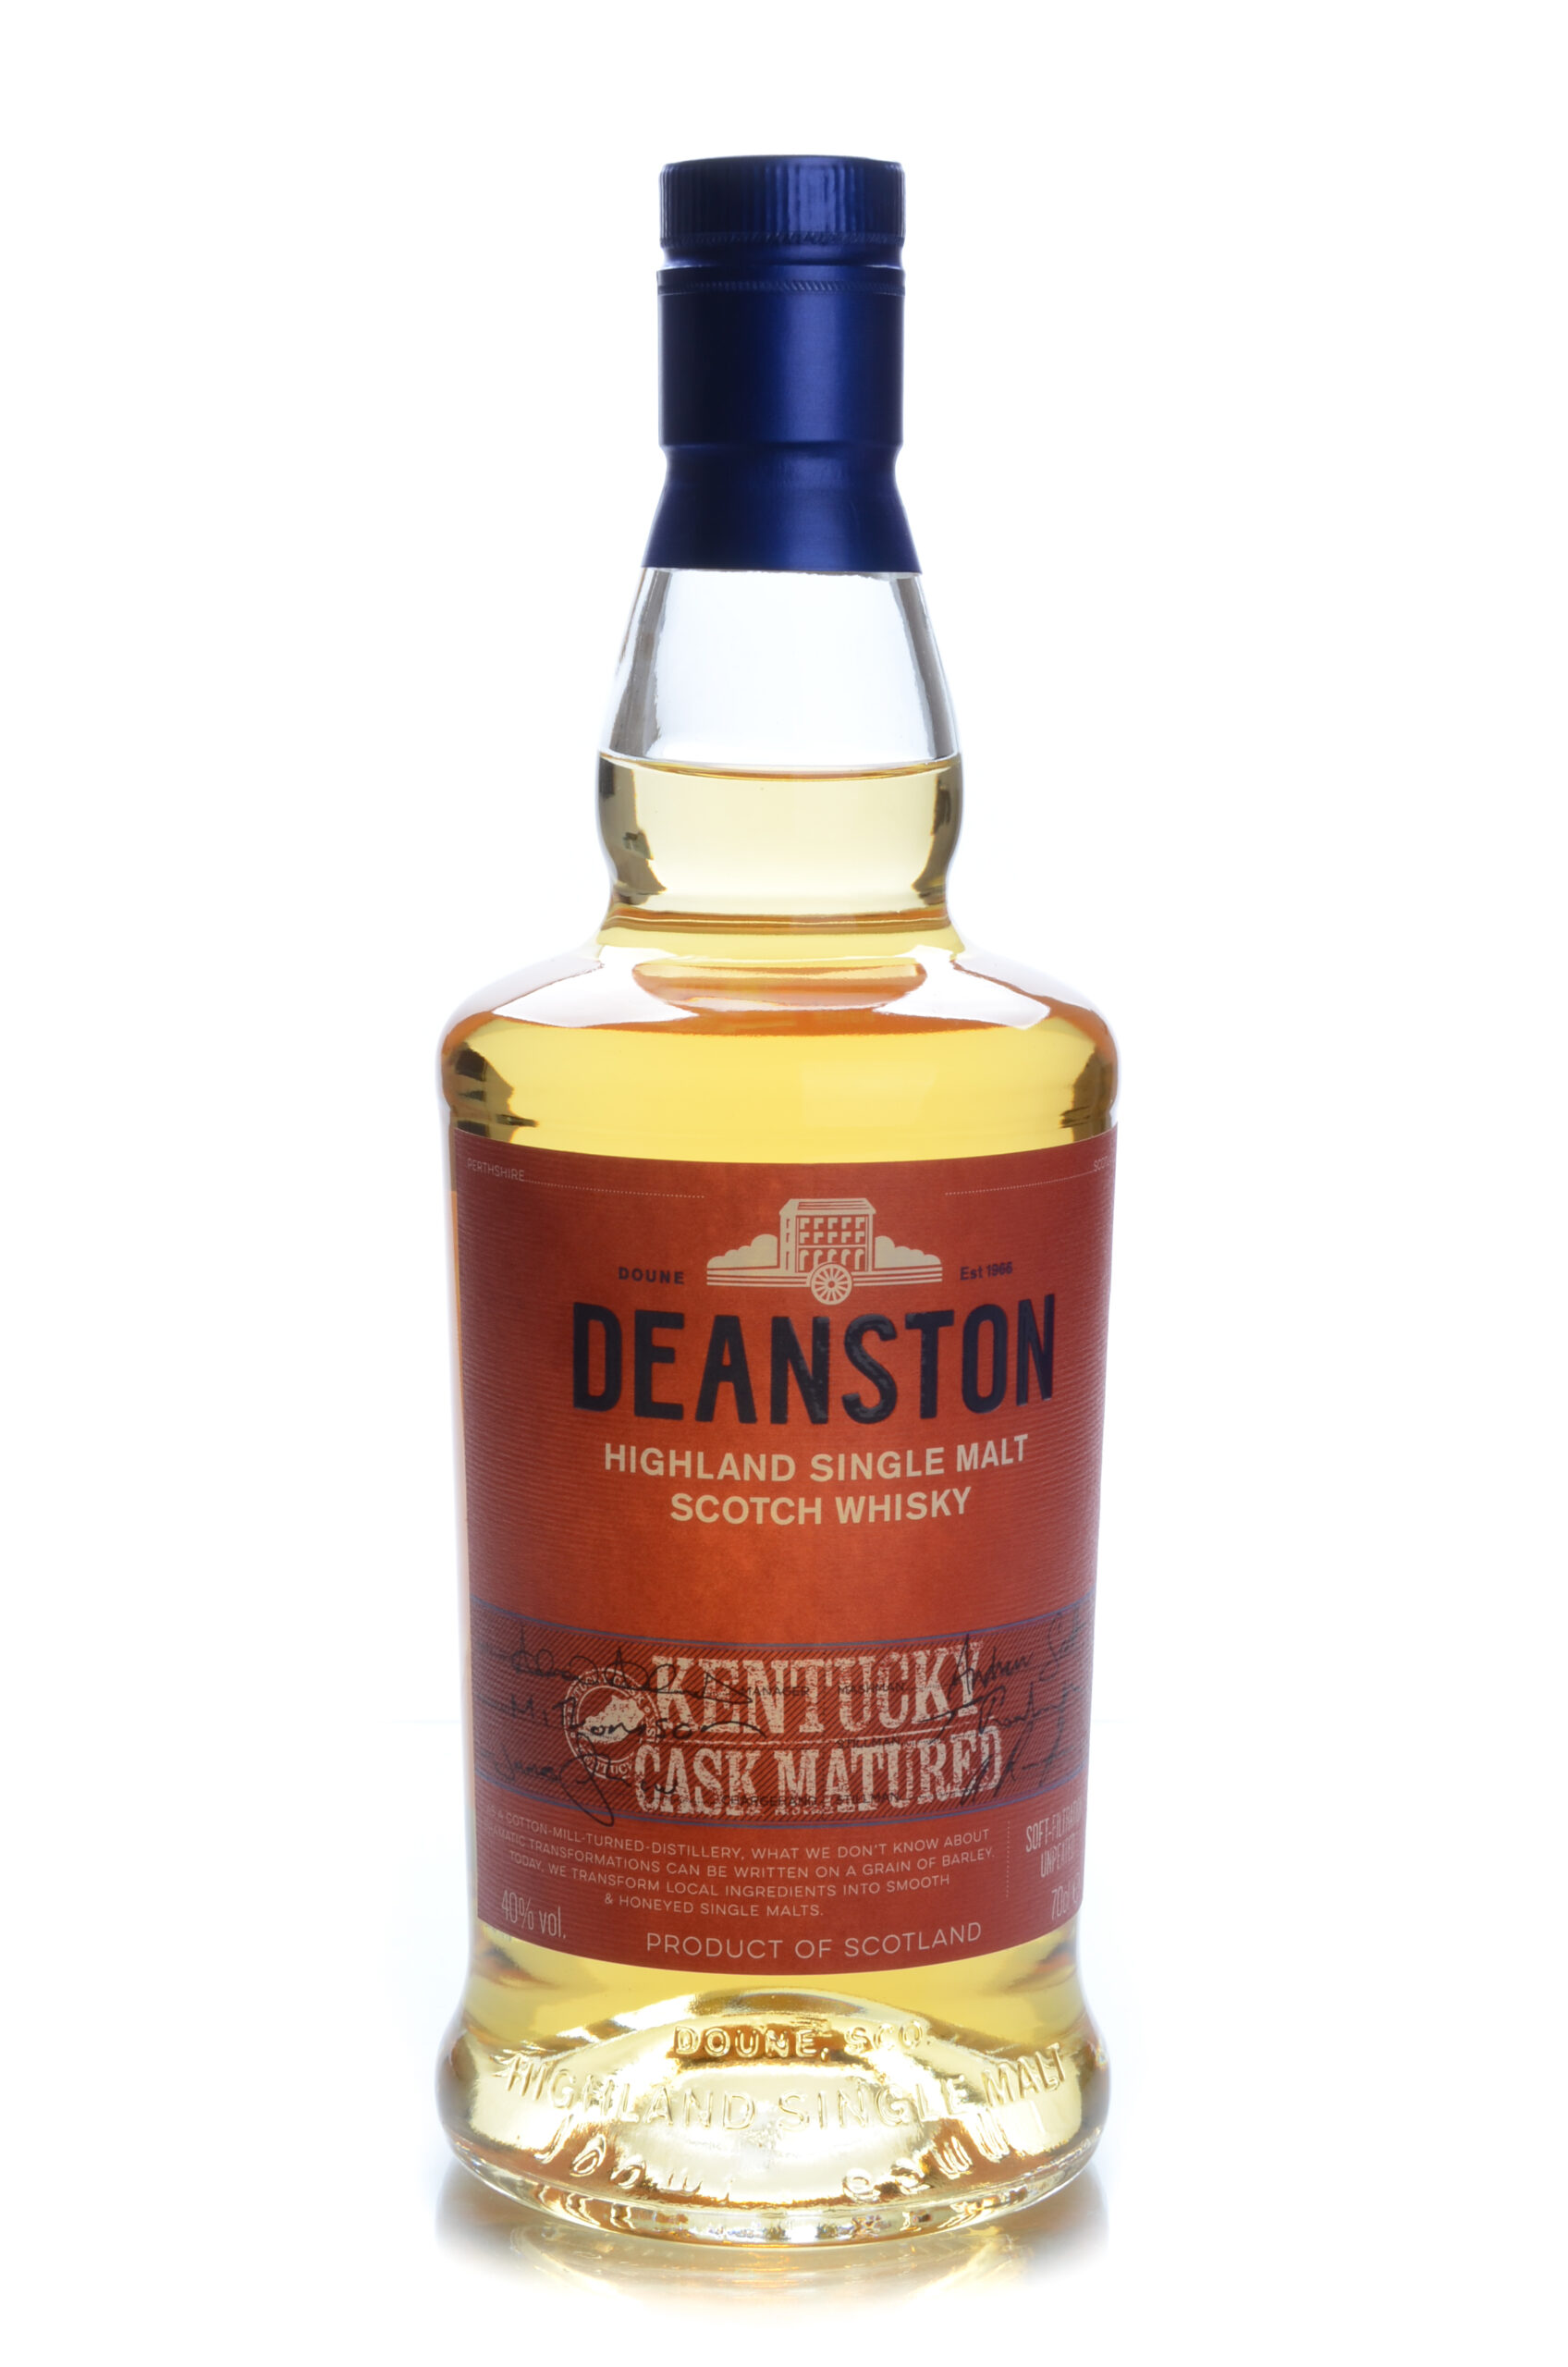 Deanston Kentucky Cask Matured